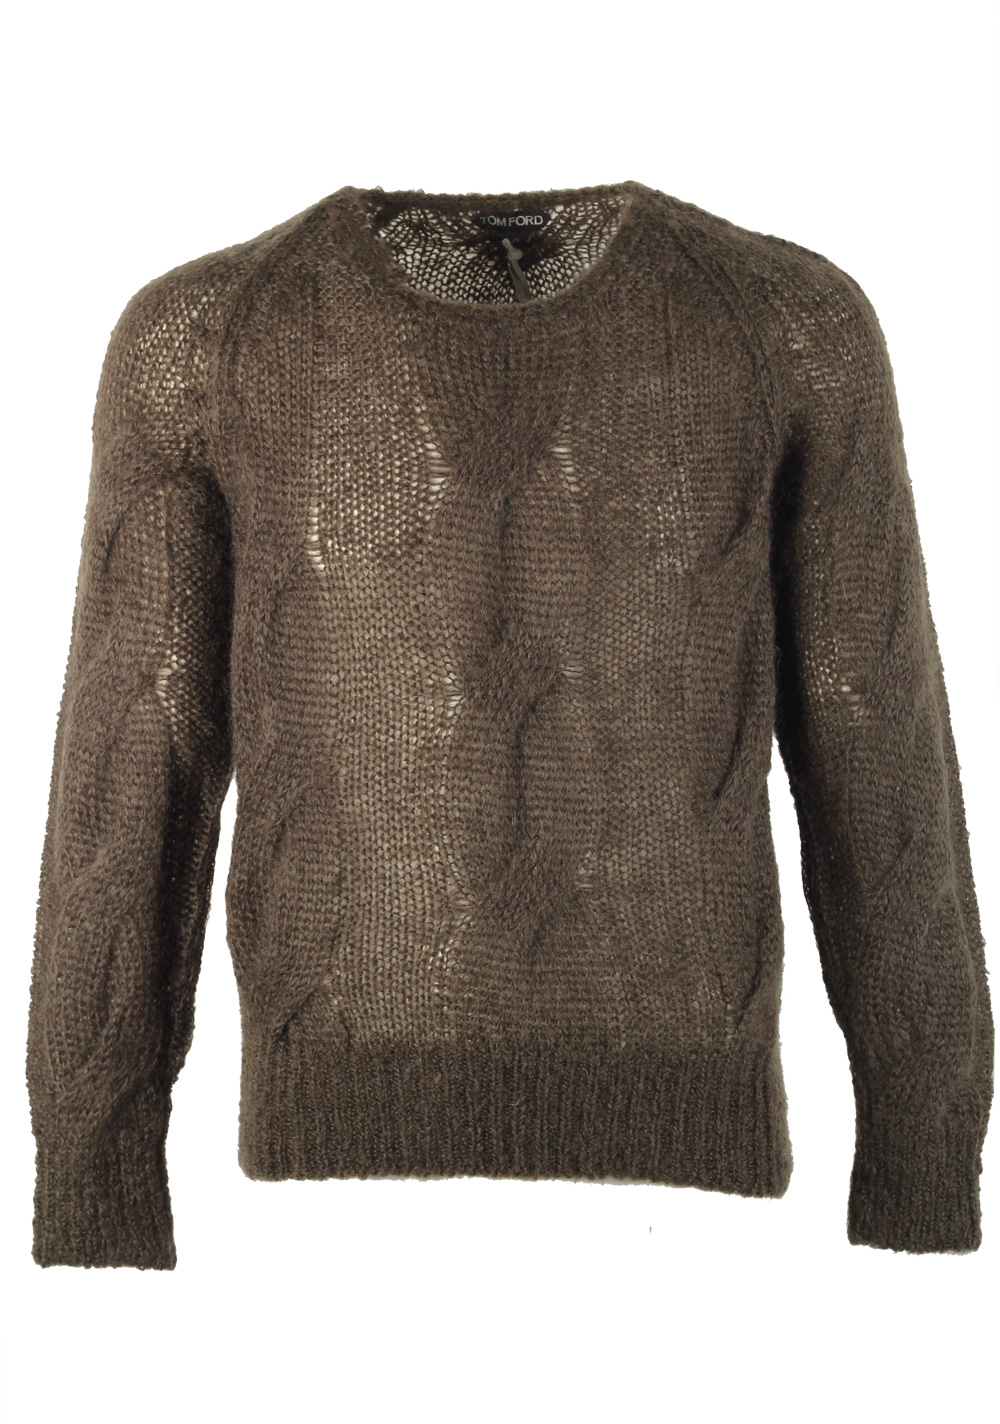 TOM FORD Brownish Green Crew Neck Cable Sweater | Costume Limité